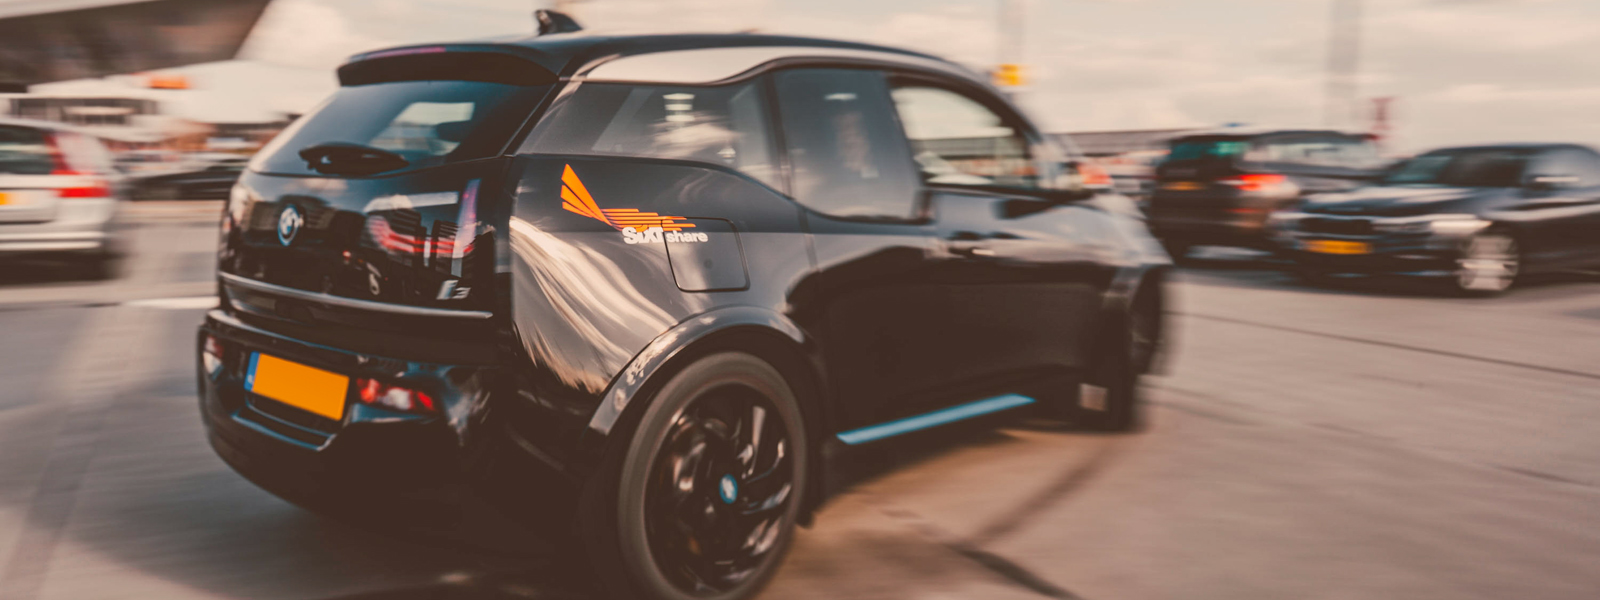 sixt share carsharing vloot bmw